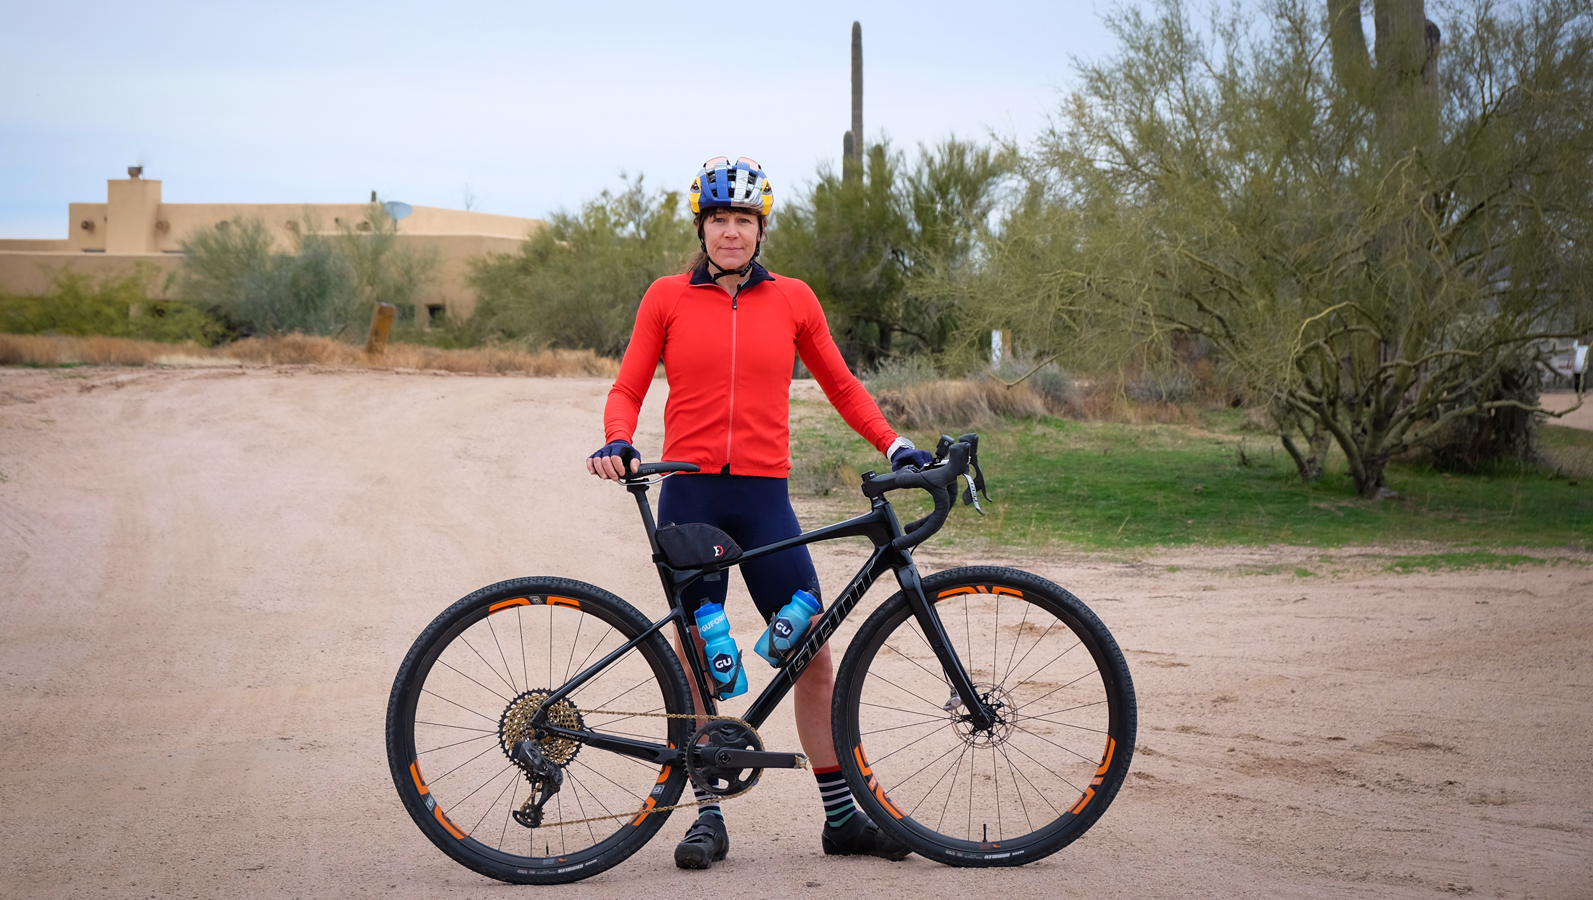 Rebecca Rusch teams up with Giant and will tackle this year's gravel races on the Revolt Advanced.